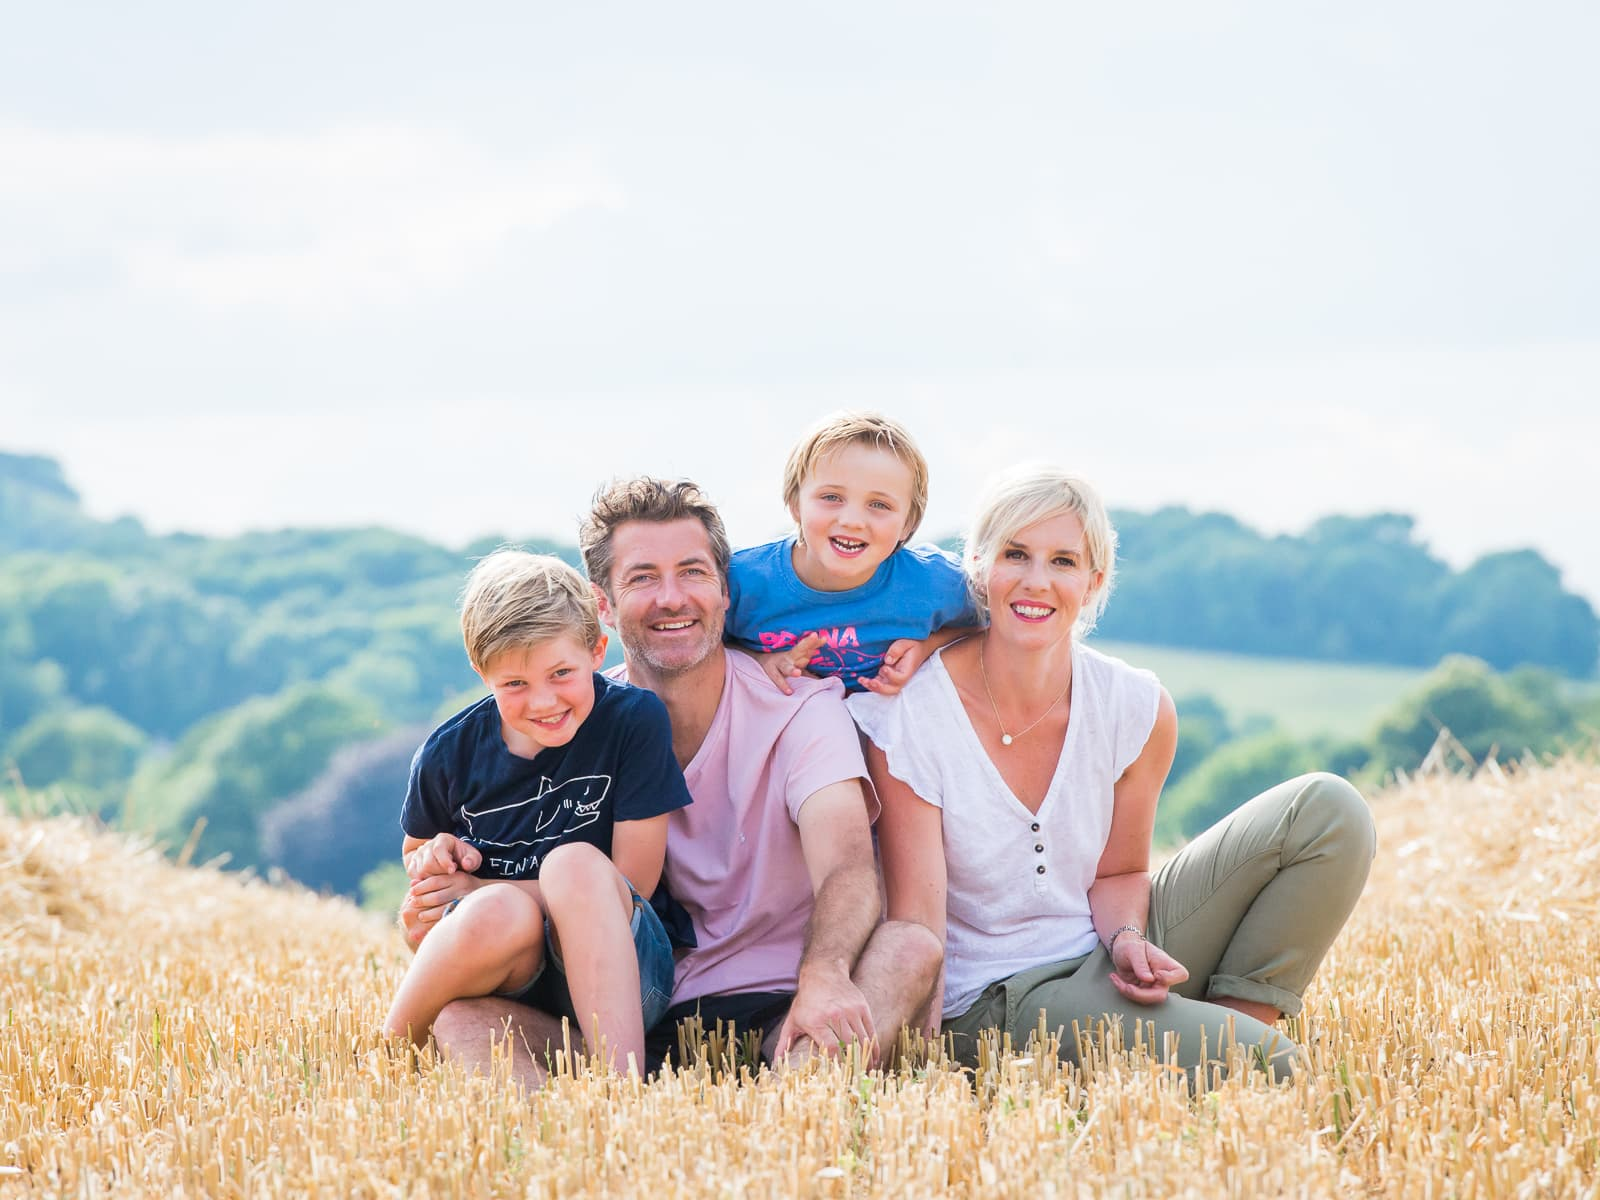 A family sitting in a field of corn during a family photoshoot in Ditchling, Sussex